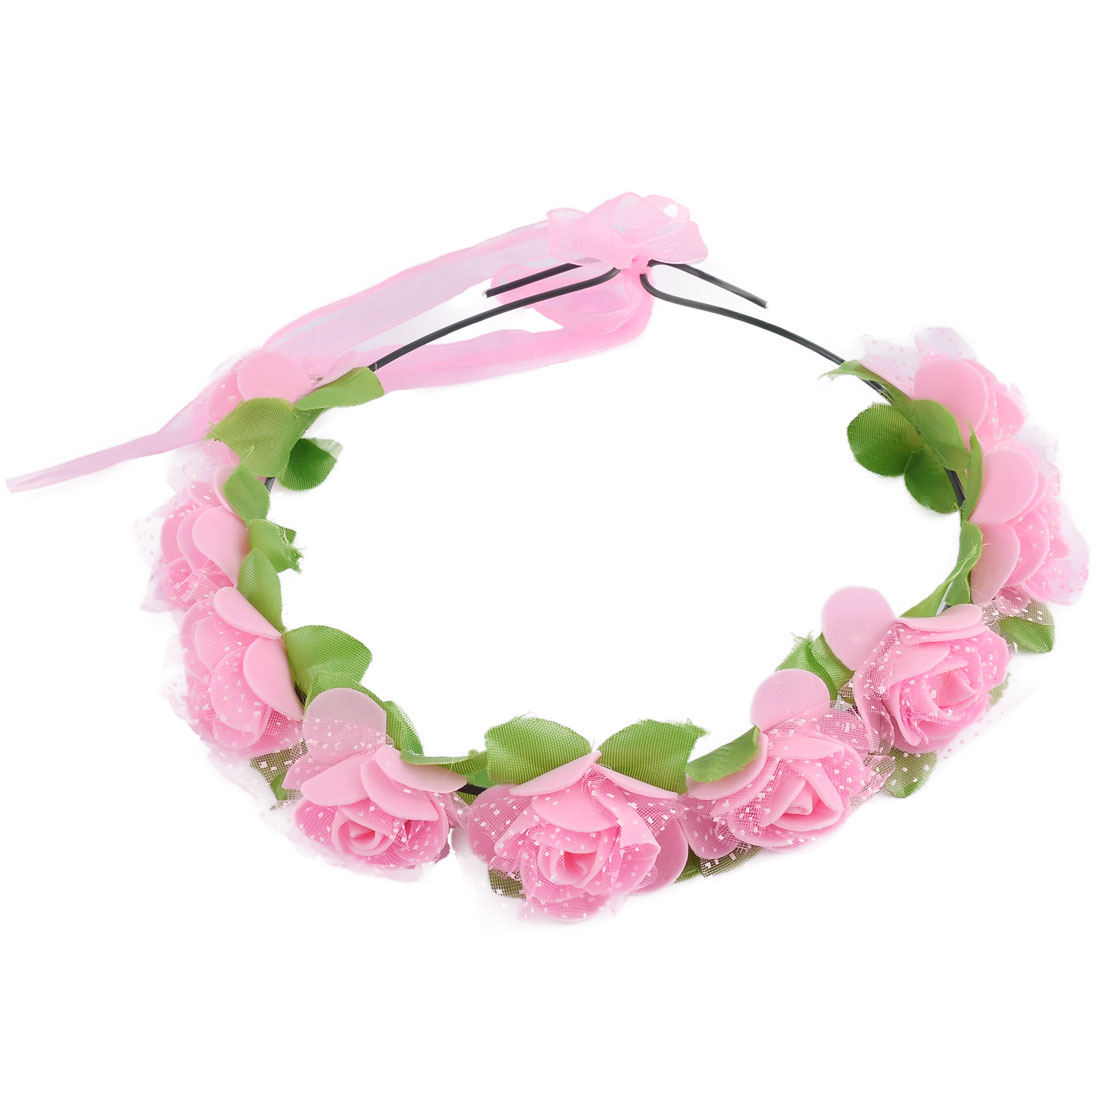 Women Handmade Rose Flowers Ribbon Festival Hair Bands Head Wreath Pink